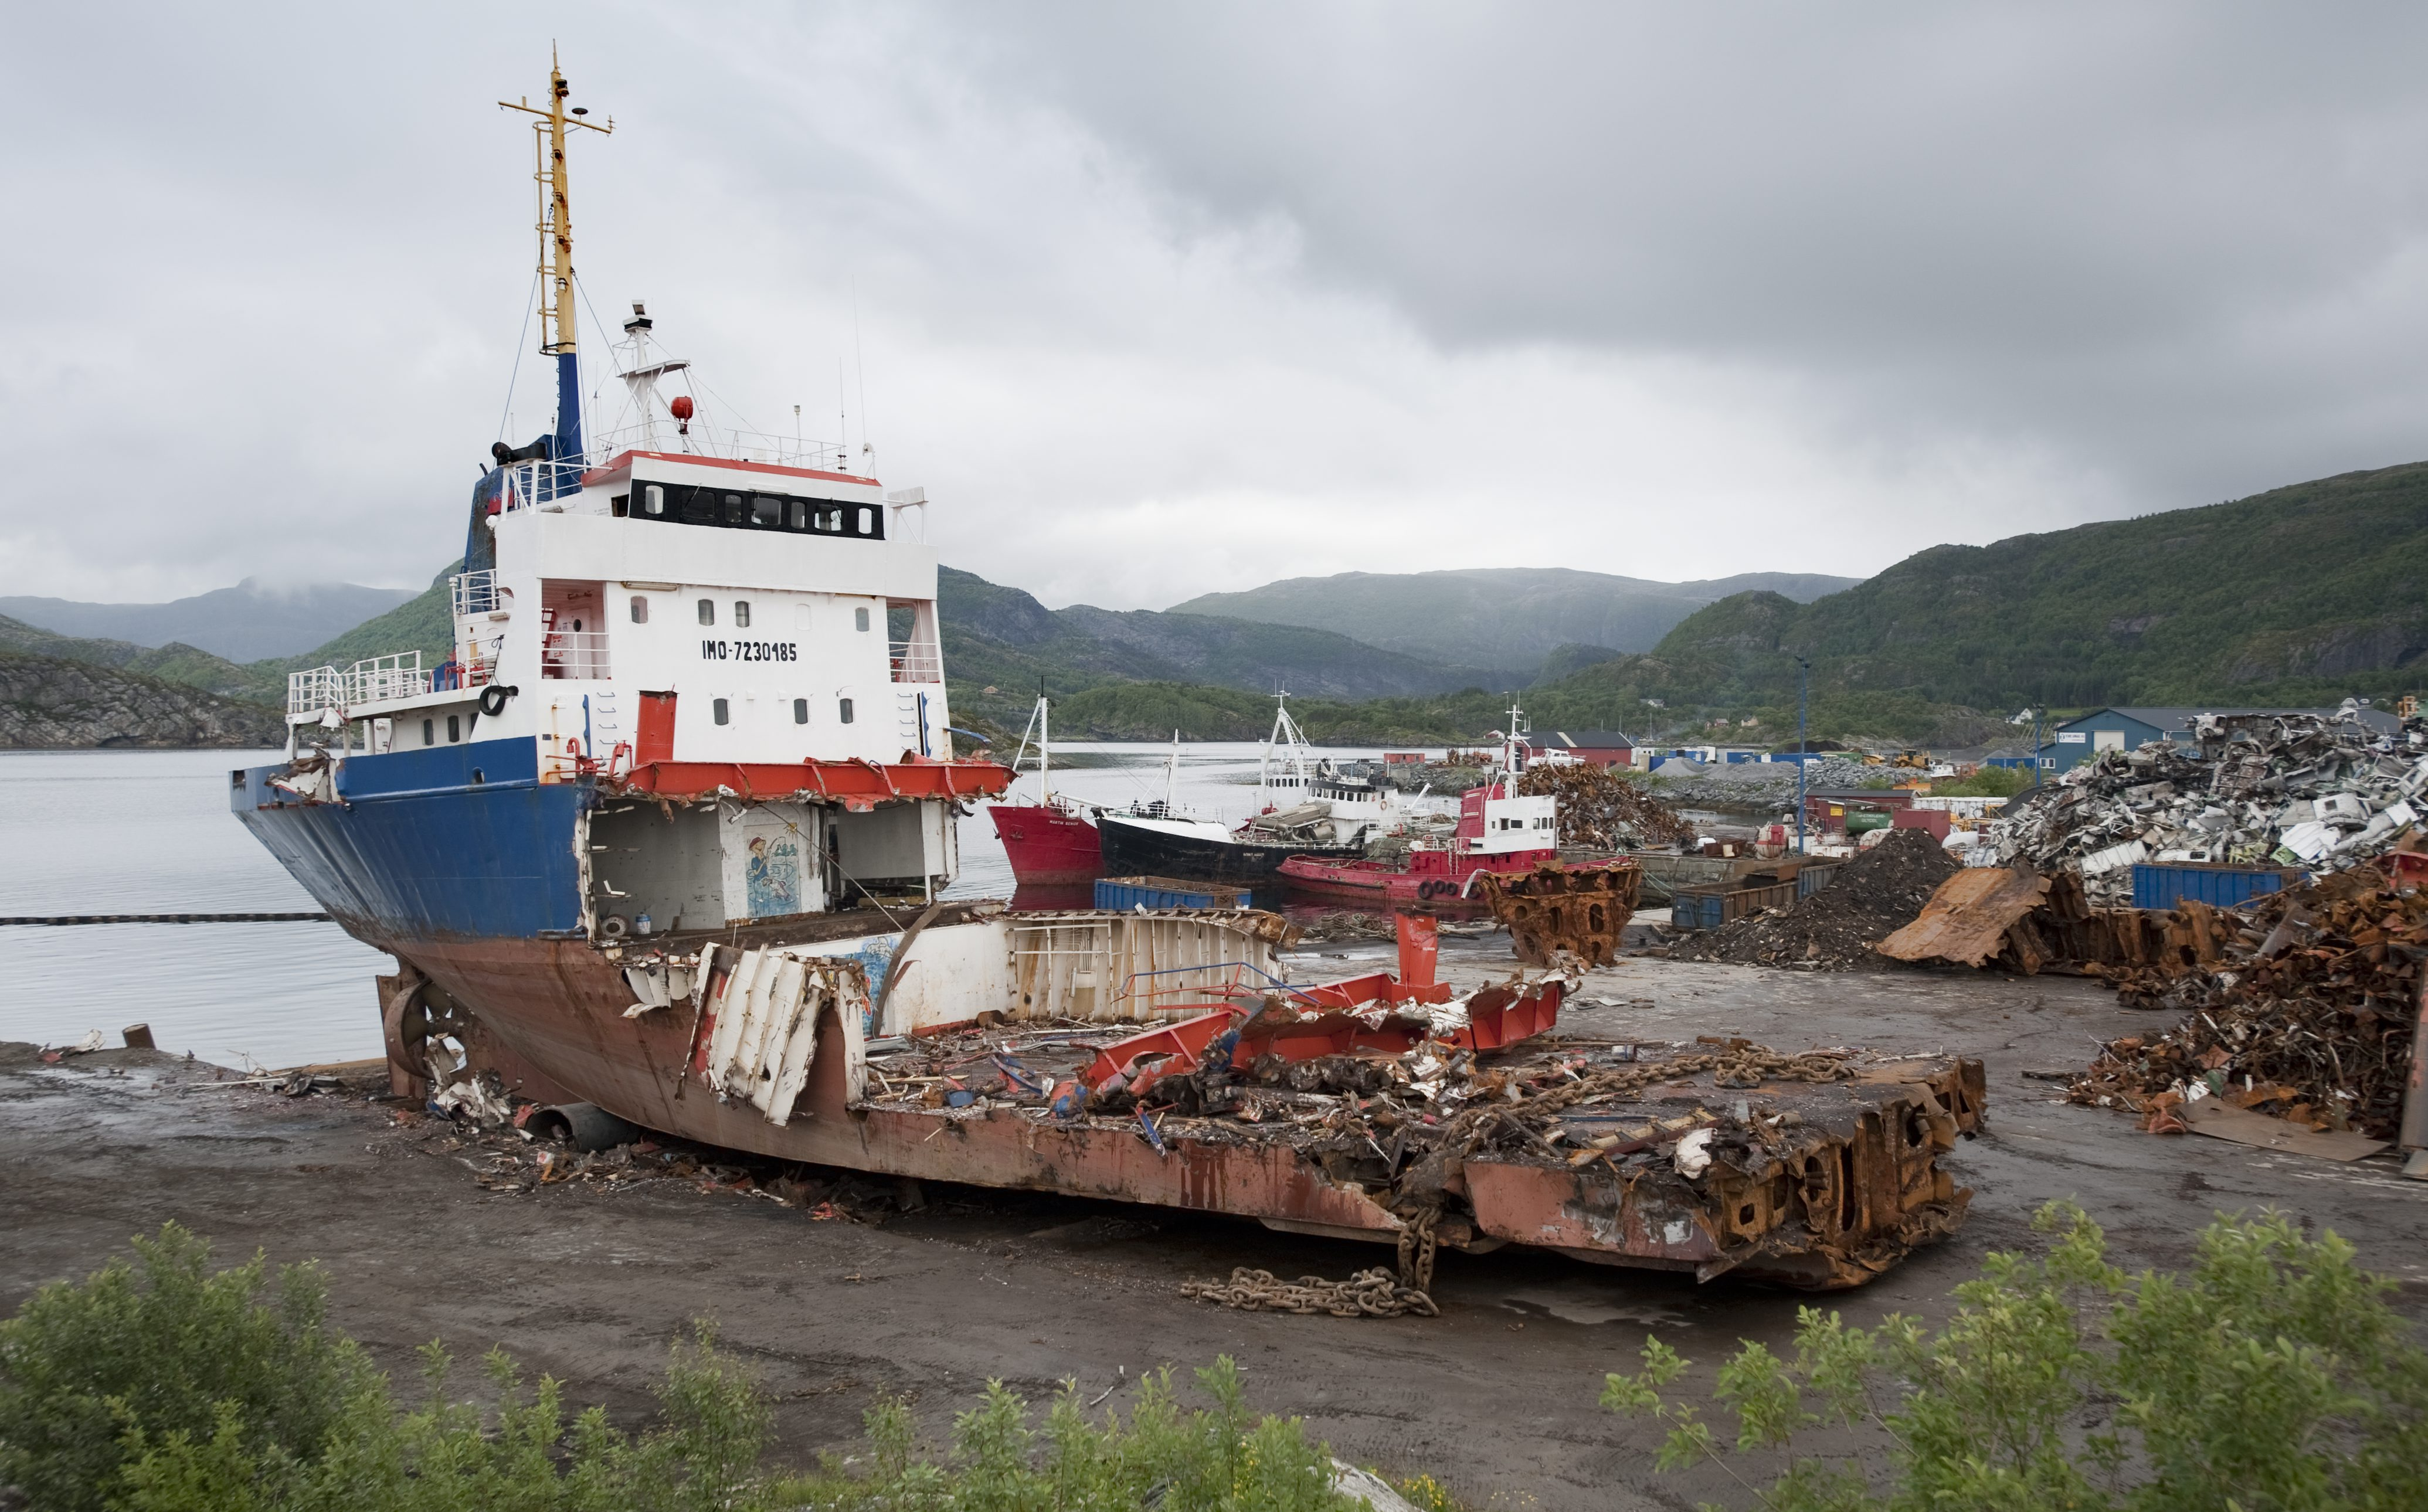 The photo shows a ship being demolished at Fosen Gjenvinning AS in Norway.